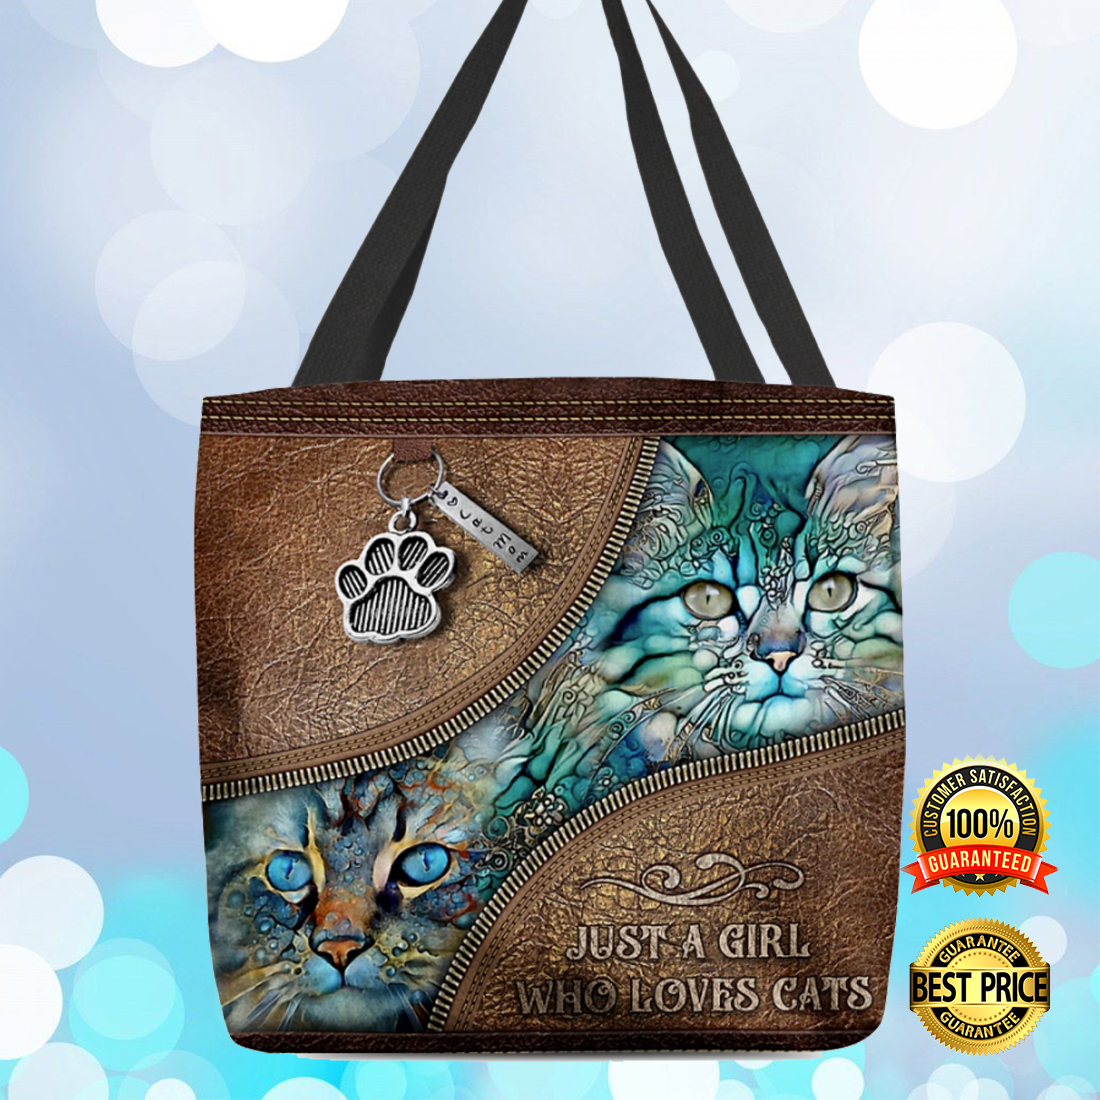 Just a girl who loves cats tote bag 4